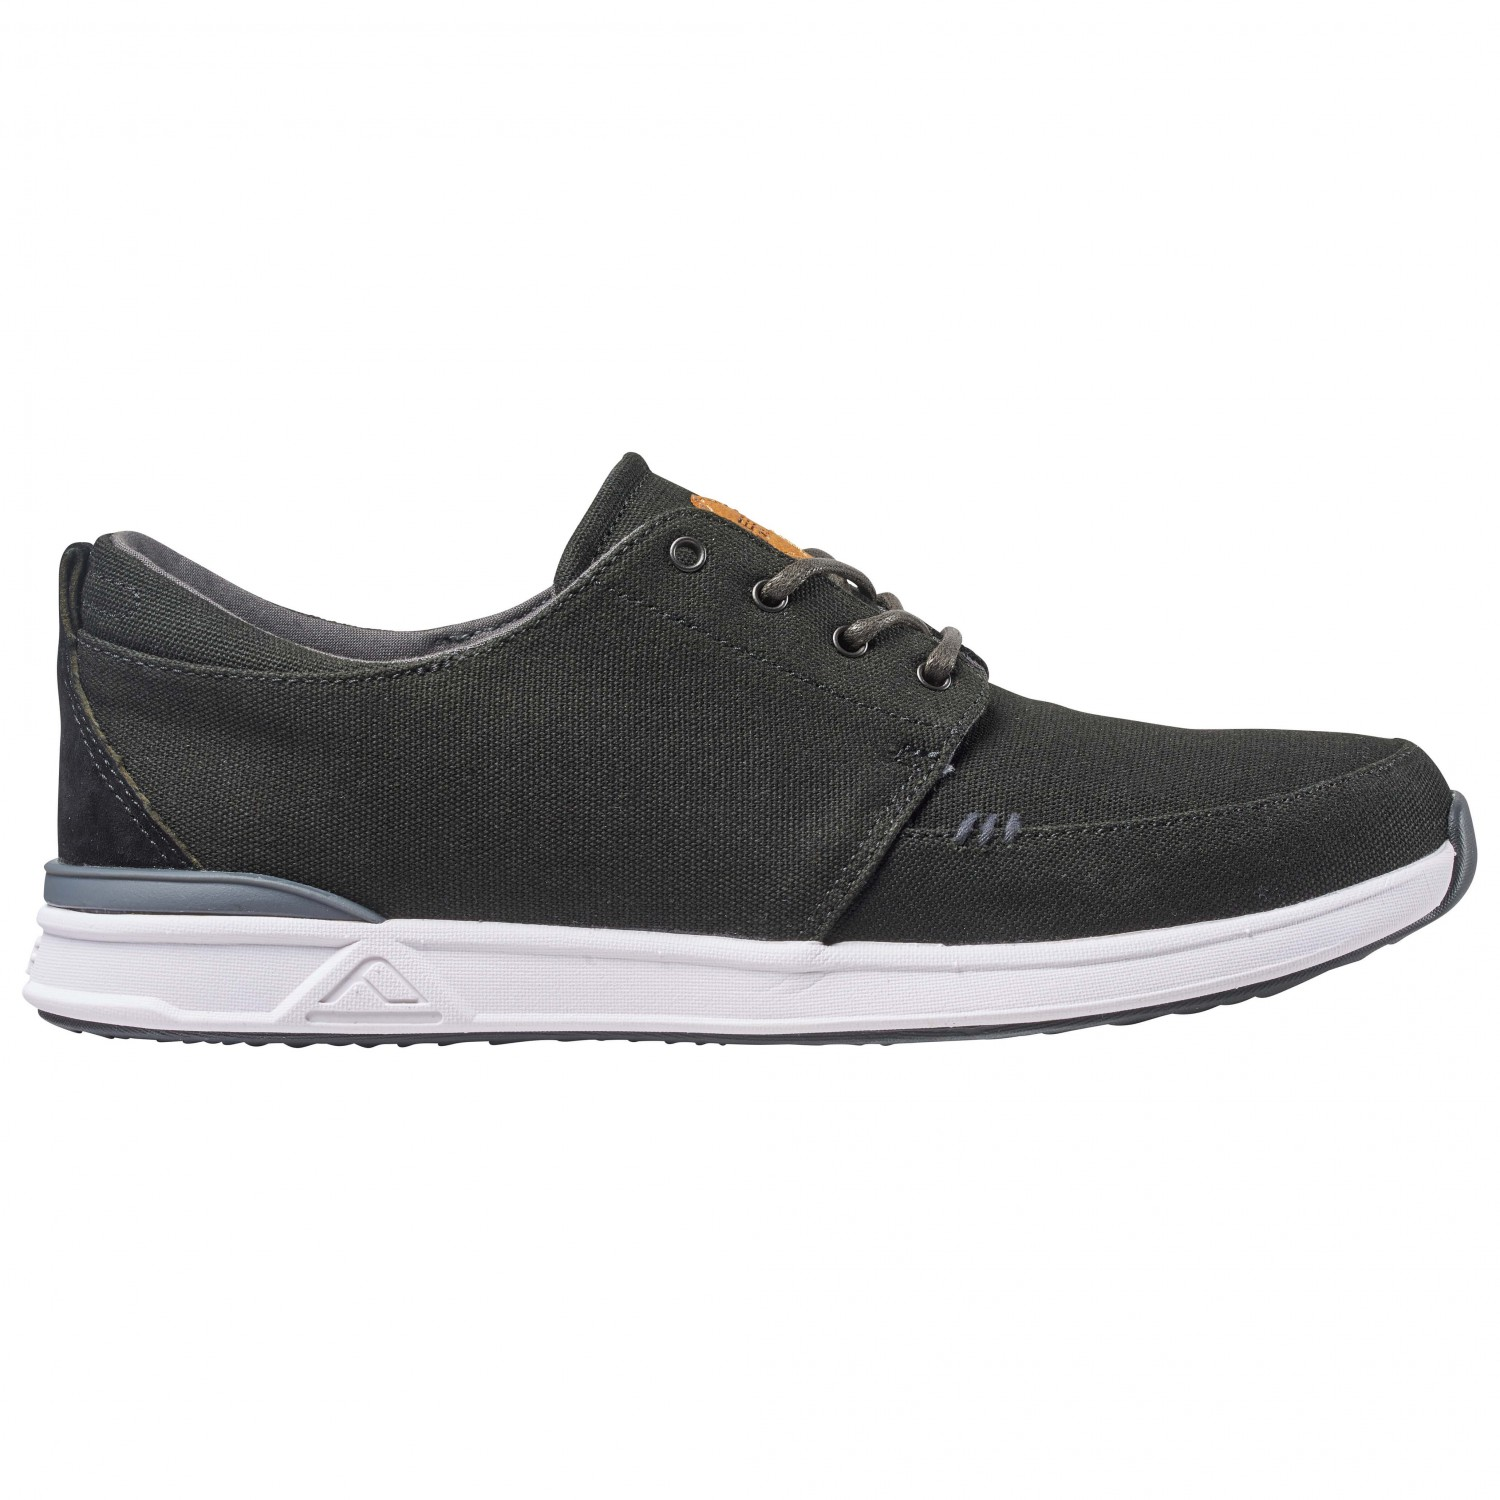 Where Can I Buy Reef Shoes